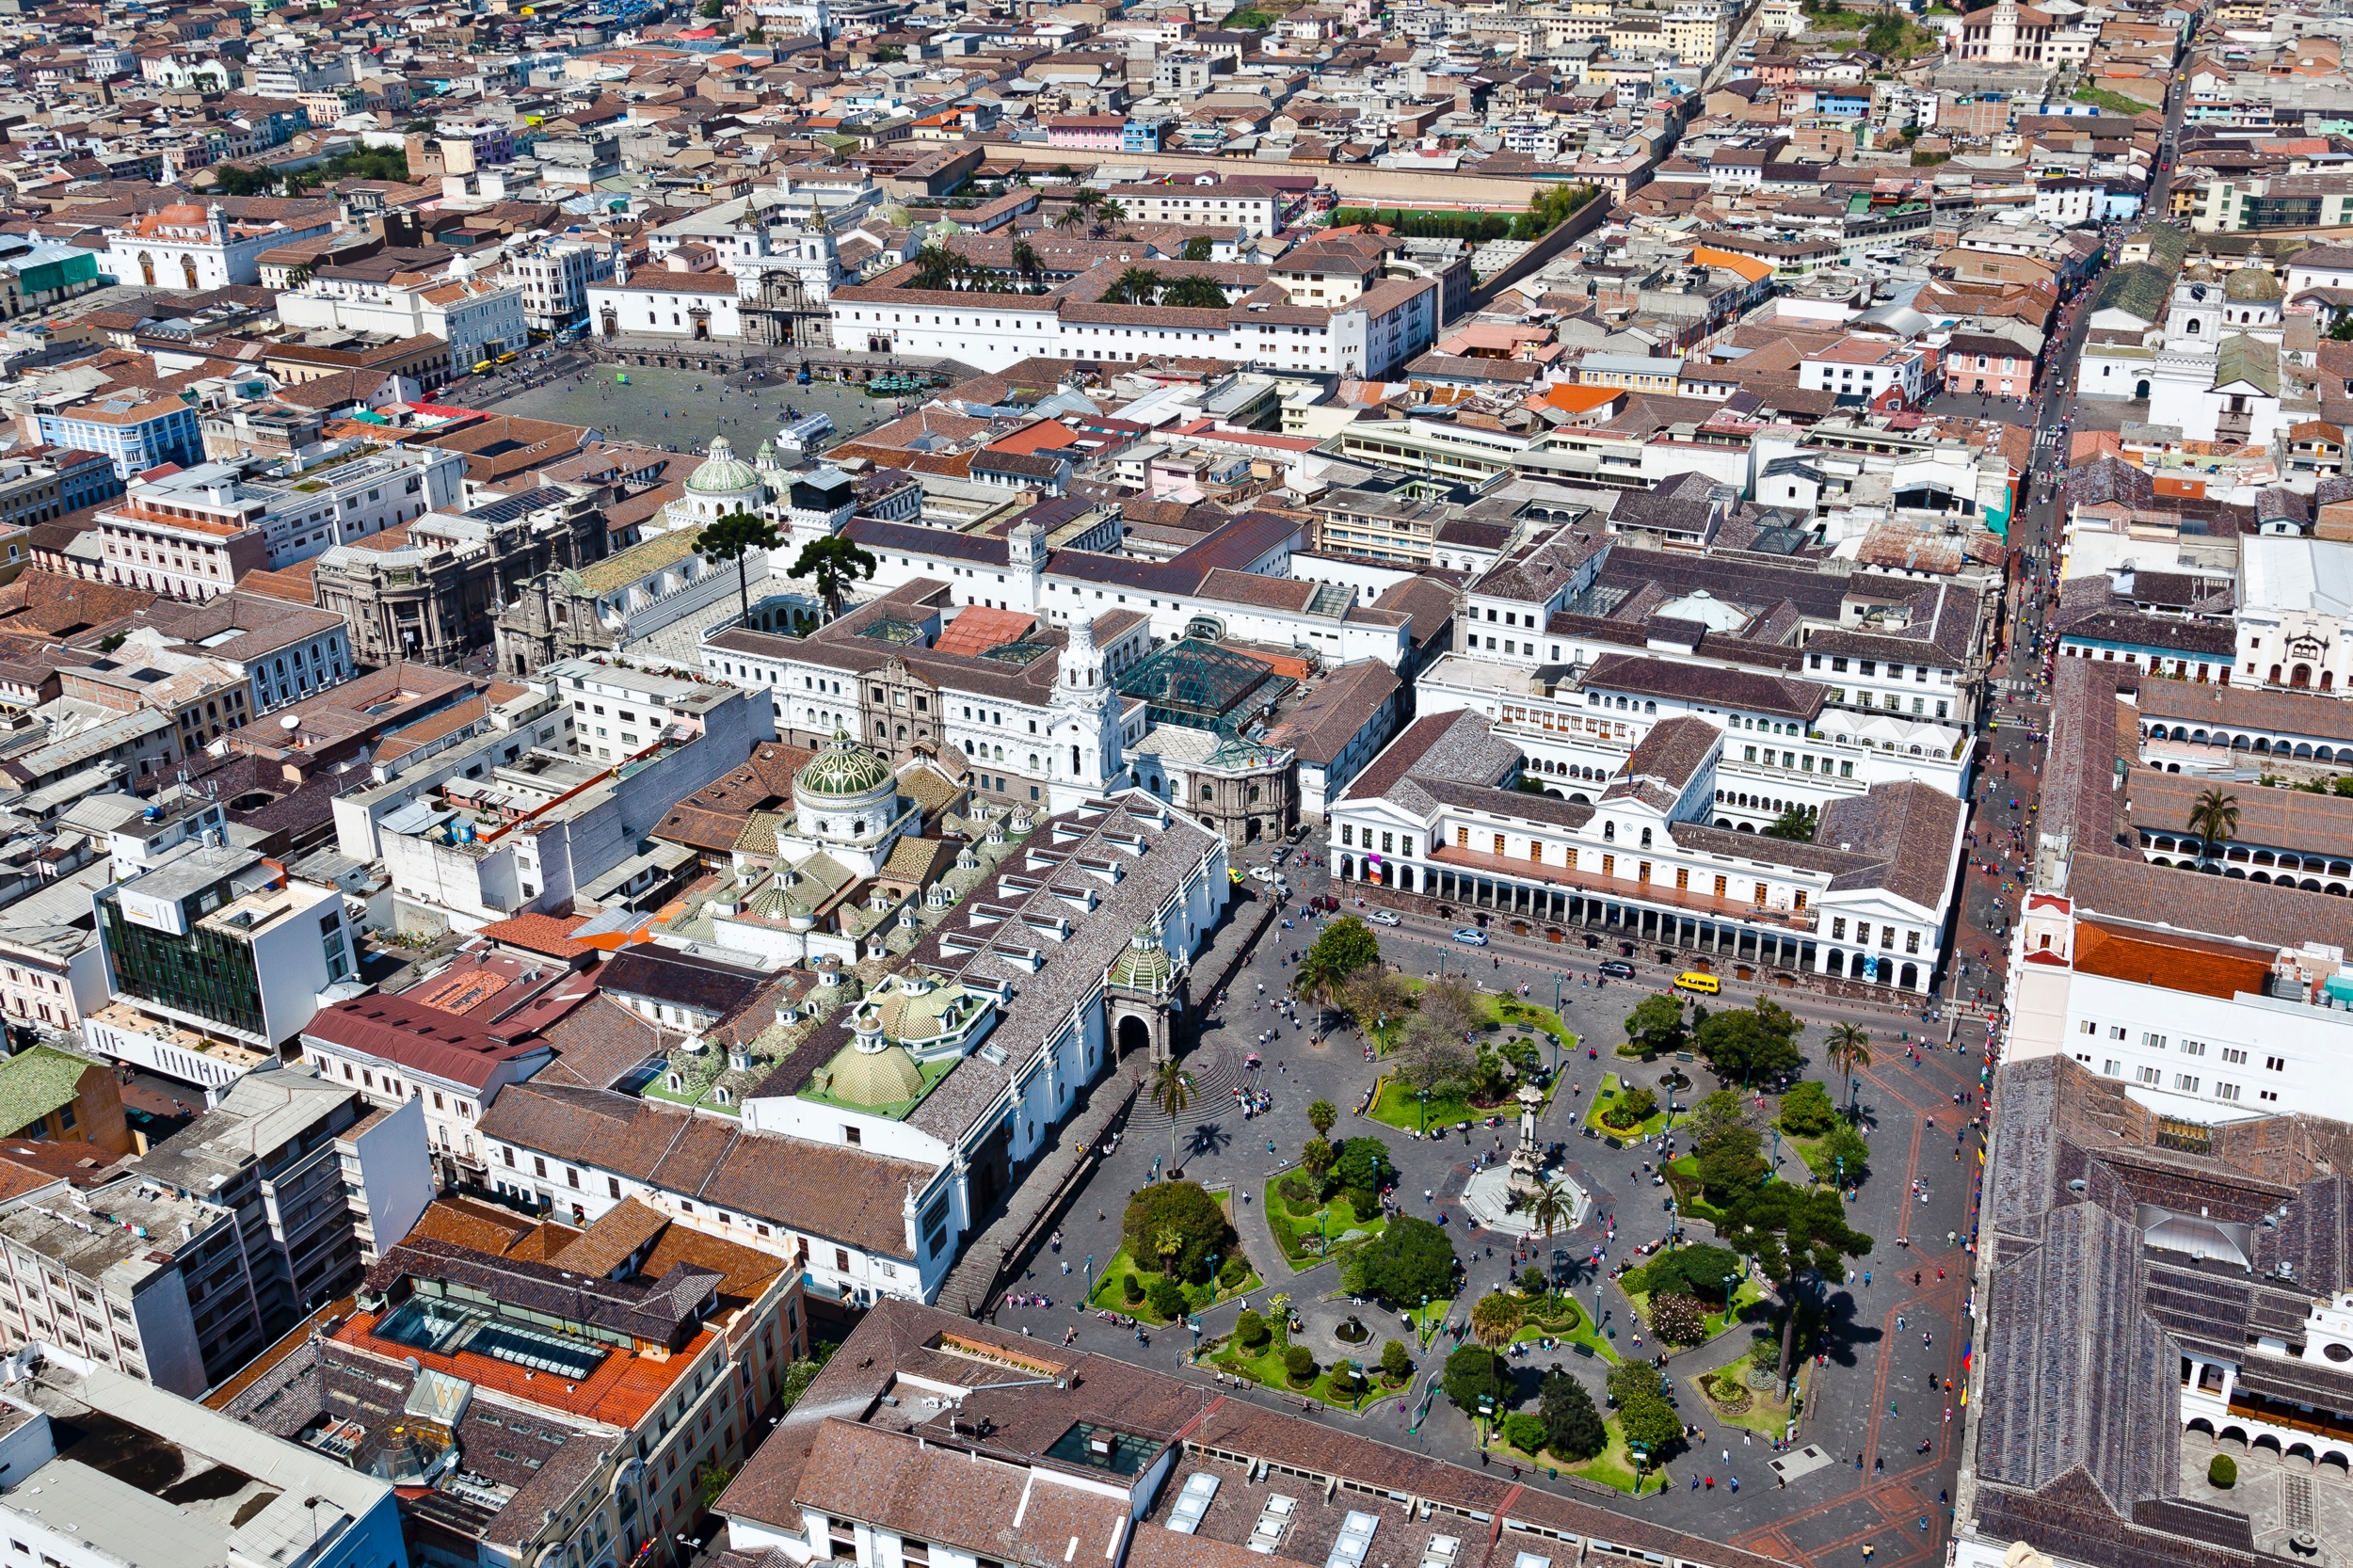 Quito's Old Town: